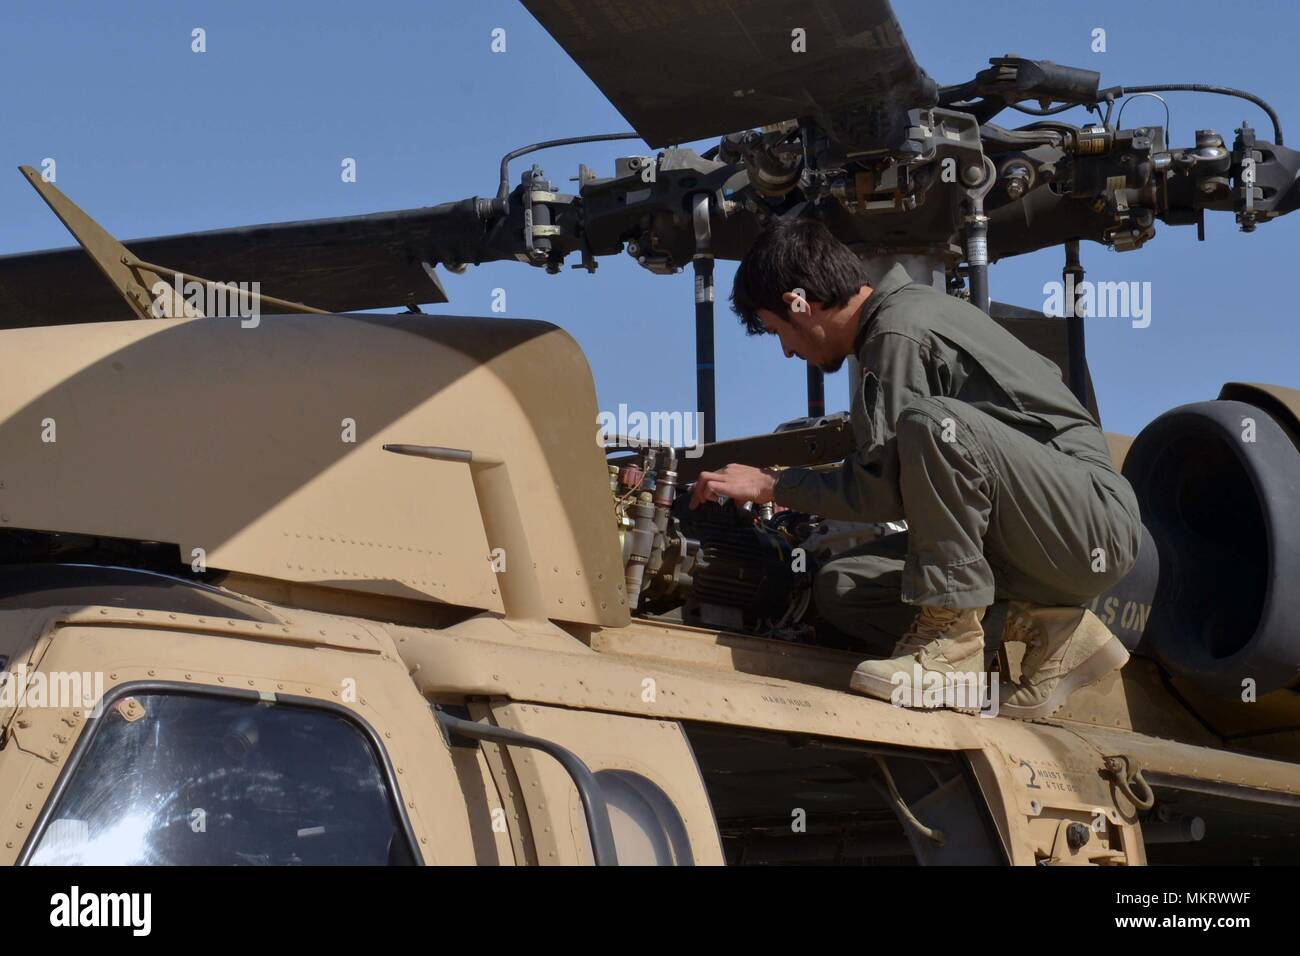 KANDAHAR AIRFIELD (May 8, 2018) -- An Afghan Air Force member inspects a UH-60 Blackhawk as air crews prepare for their first Afghan-led operational mission on this aircraft May 8, 2018, Kandahar Air Field, Afghanistan, May 8, 2018. The mission, which was in support of the elections, occurred just one day after the crews graduated from Mission Qualification Training. (U.S. Air Force photo/1st Lt. Erin Recanzone). () - Stock Image